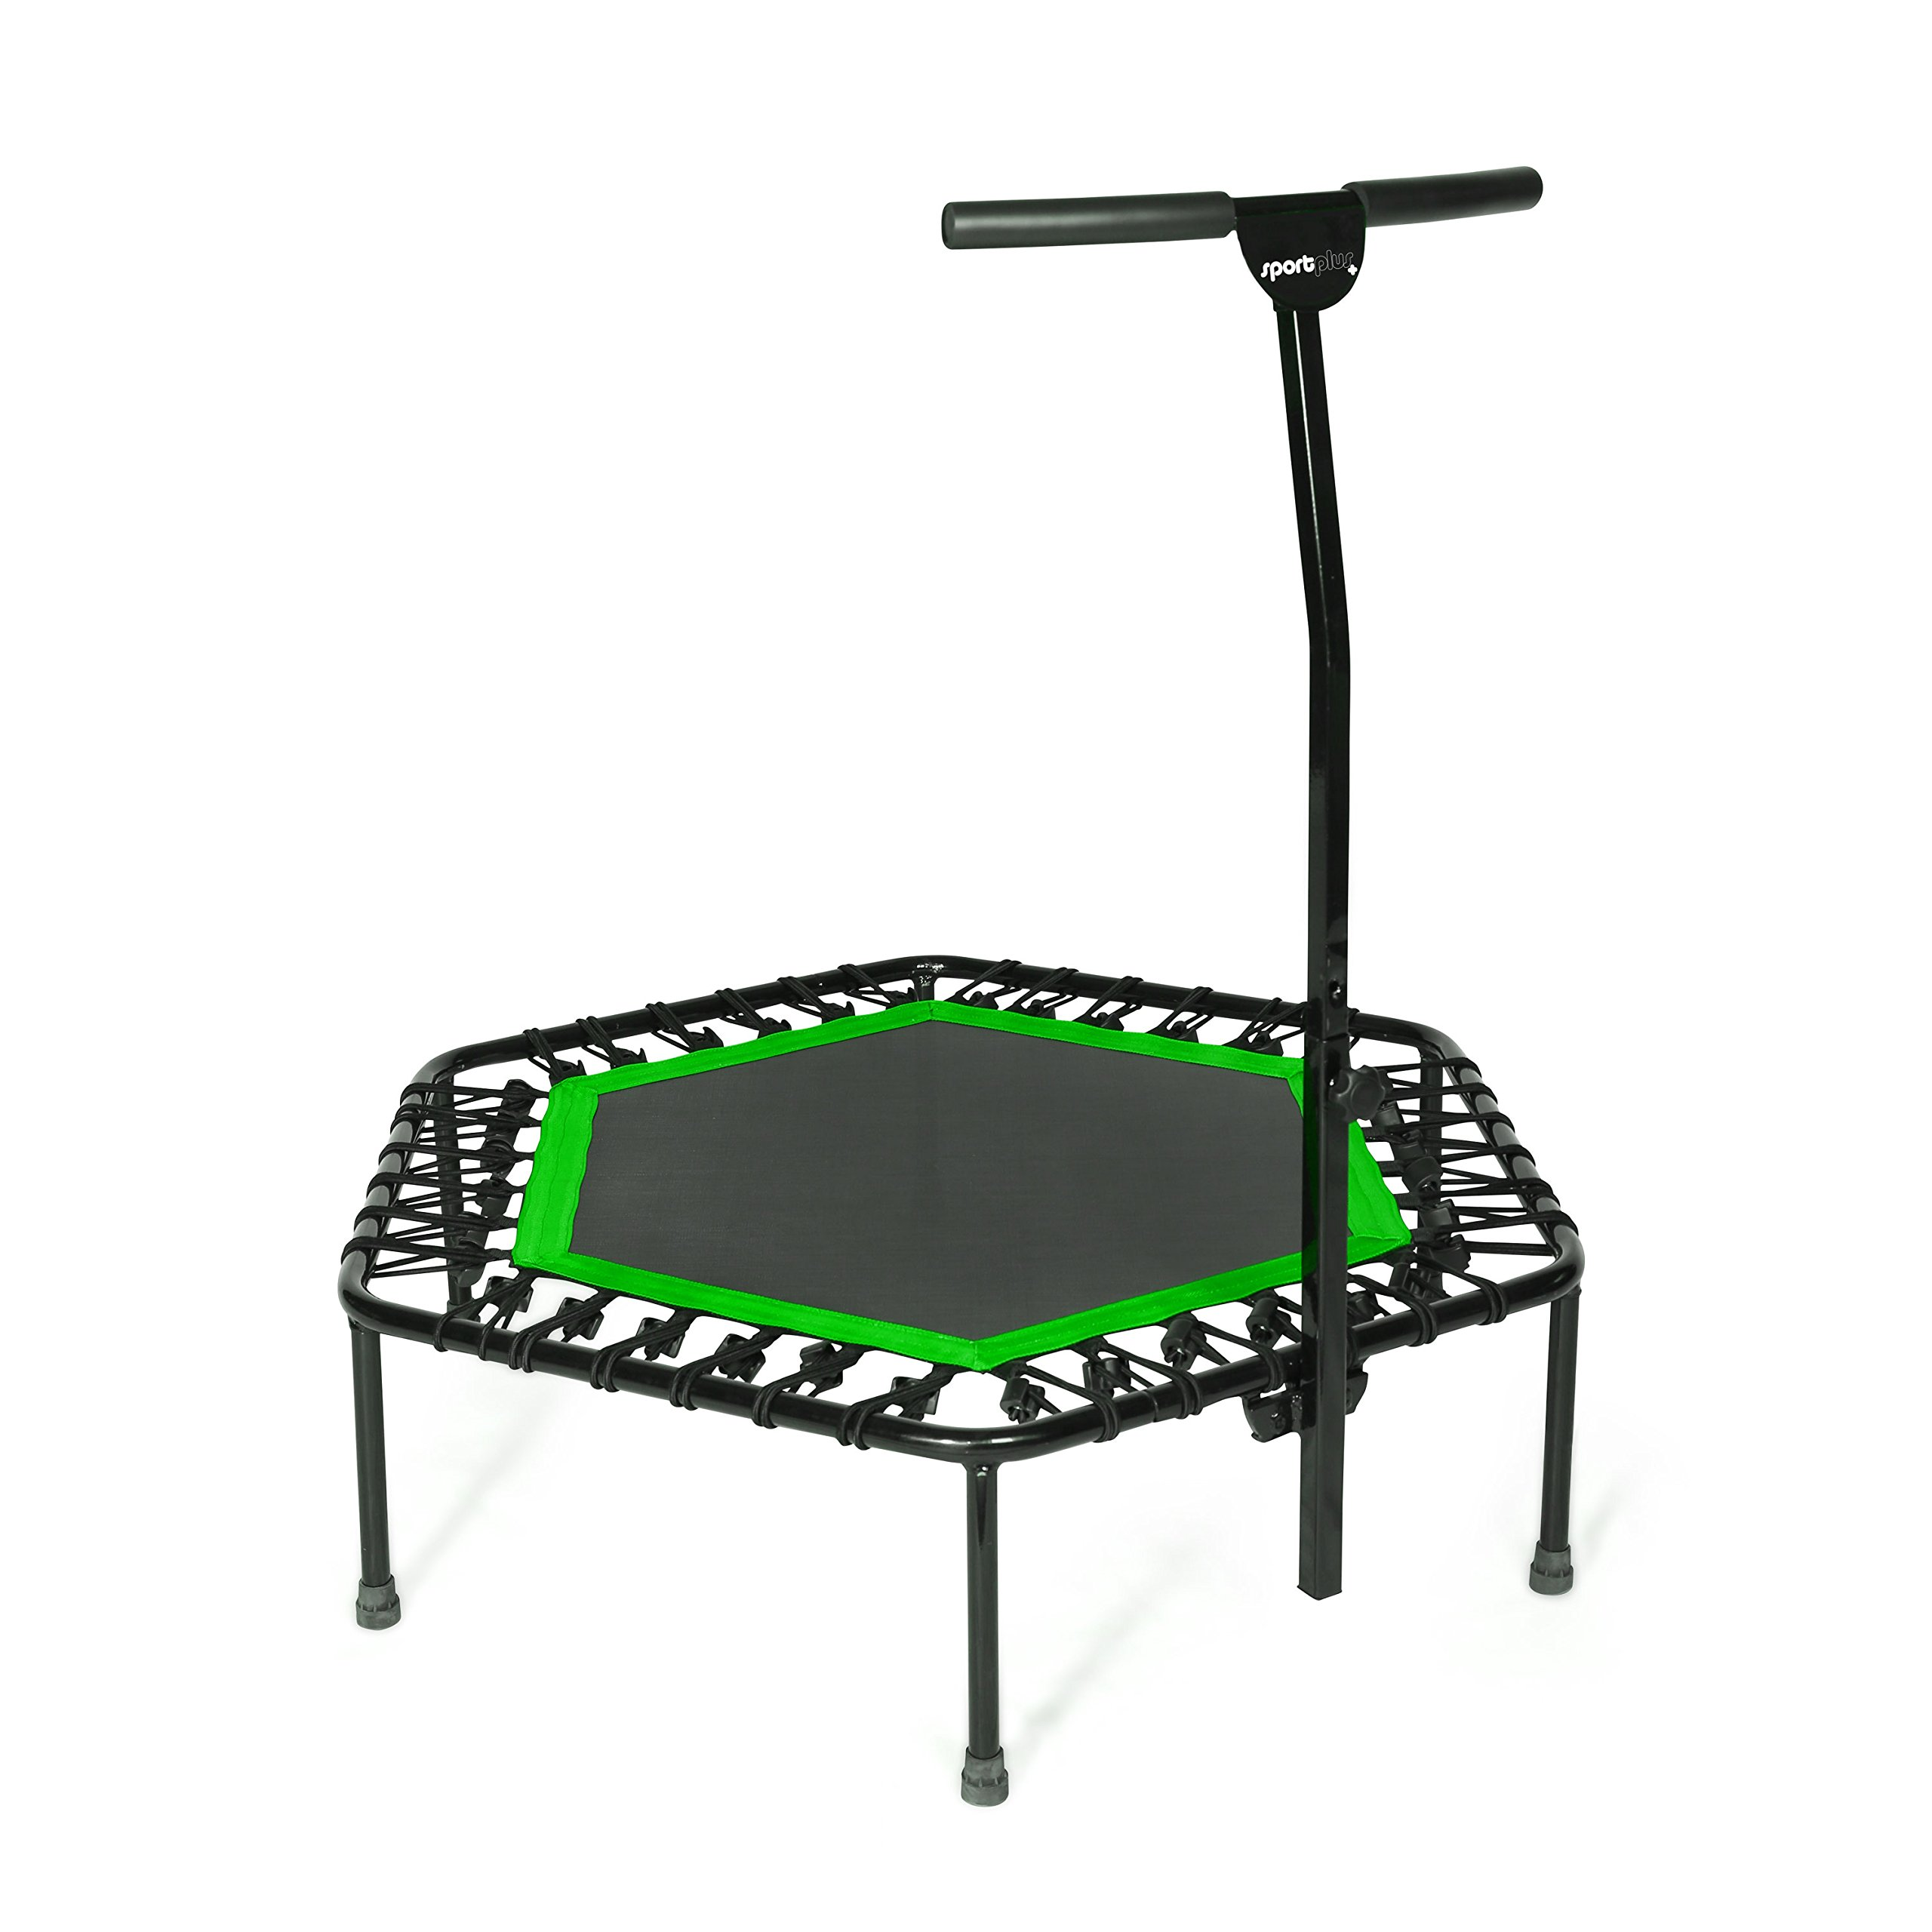 SportPlus Fitness Trampoline with Bar / OR Replacement Bungees - Indoor Rebounder Trampoline for Adults - Ideal for Cardio Workout, Training at Home, Bungee Rope System Trainer, Silent - Max 286